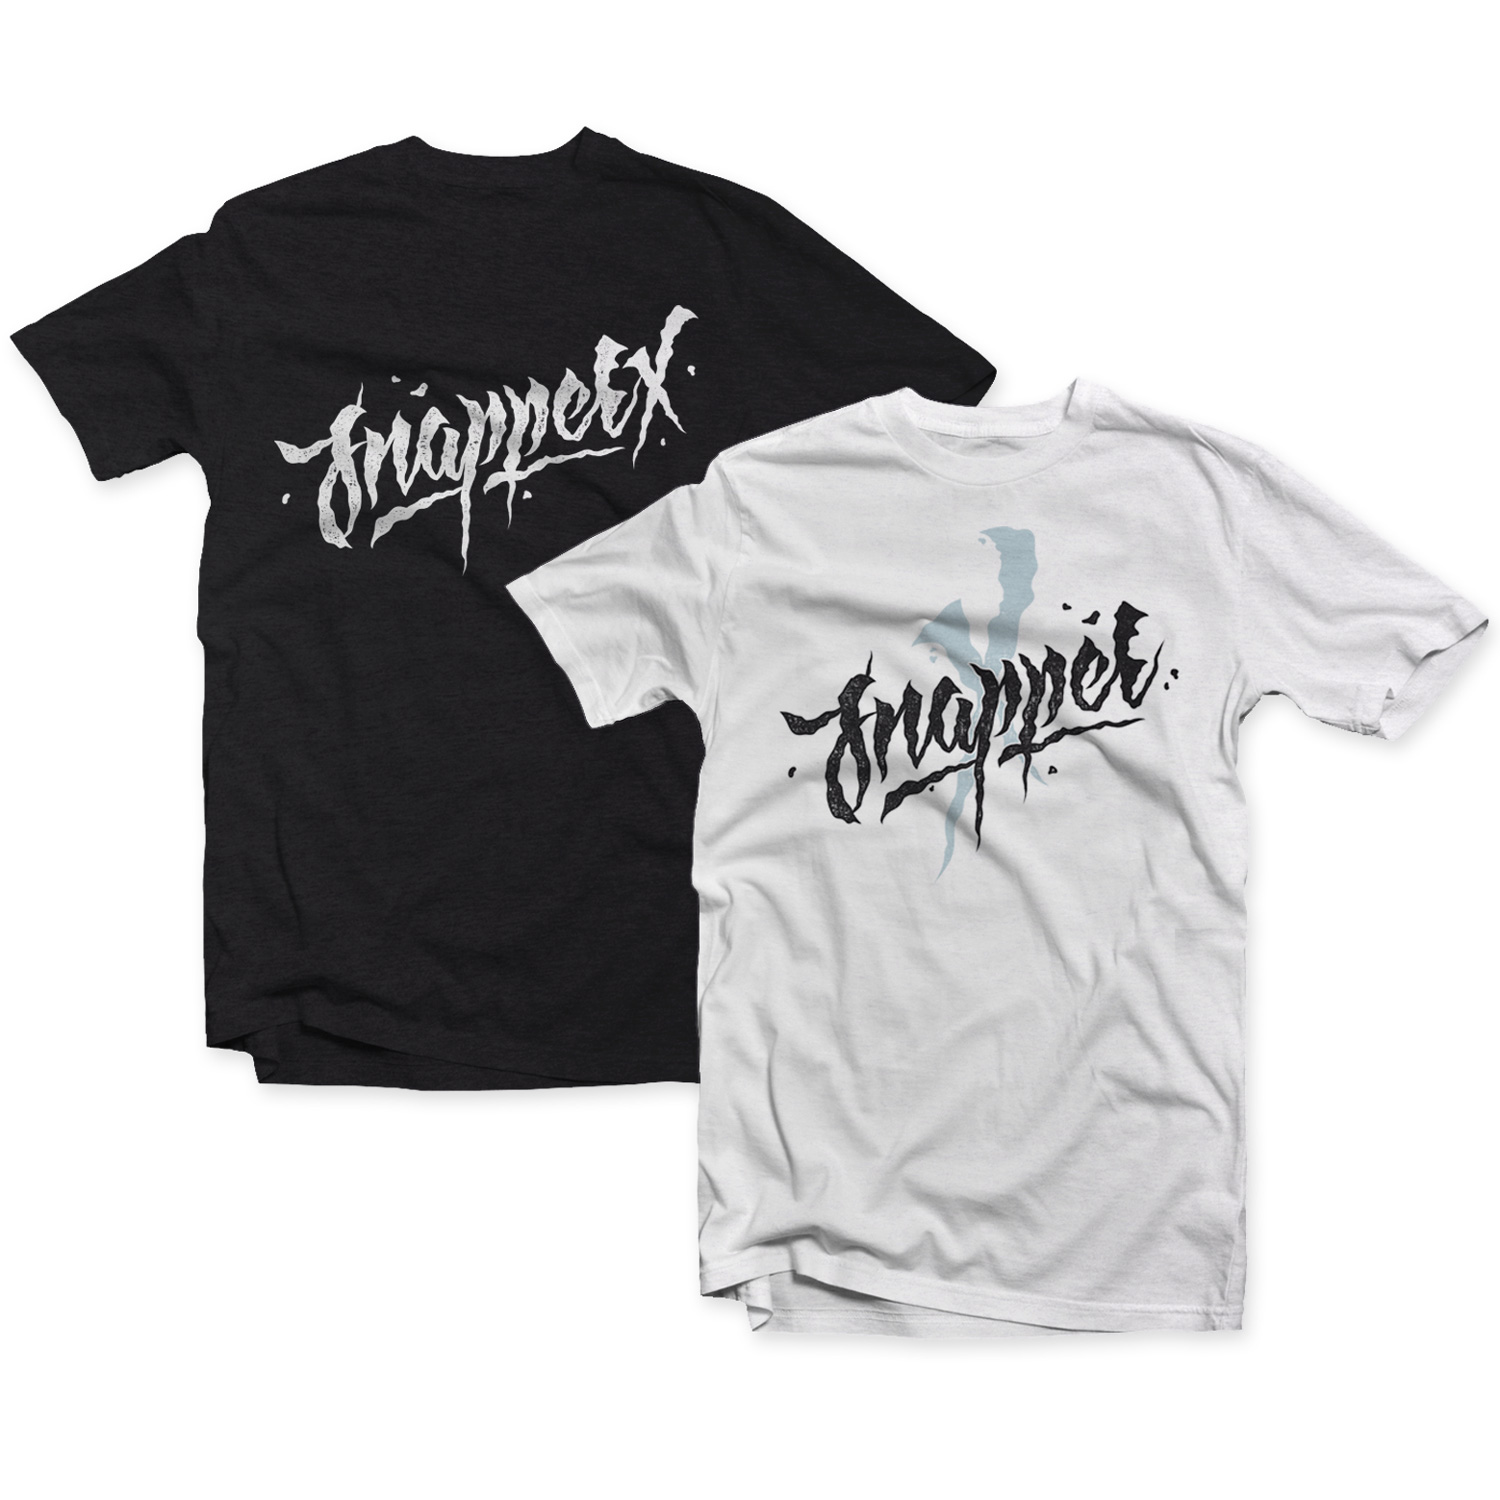 SnapperX - Calligraphy Shirt